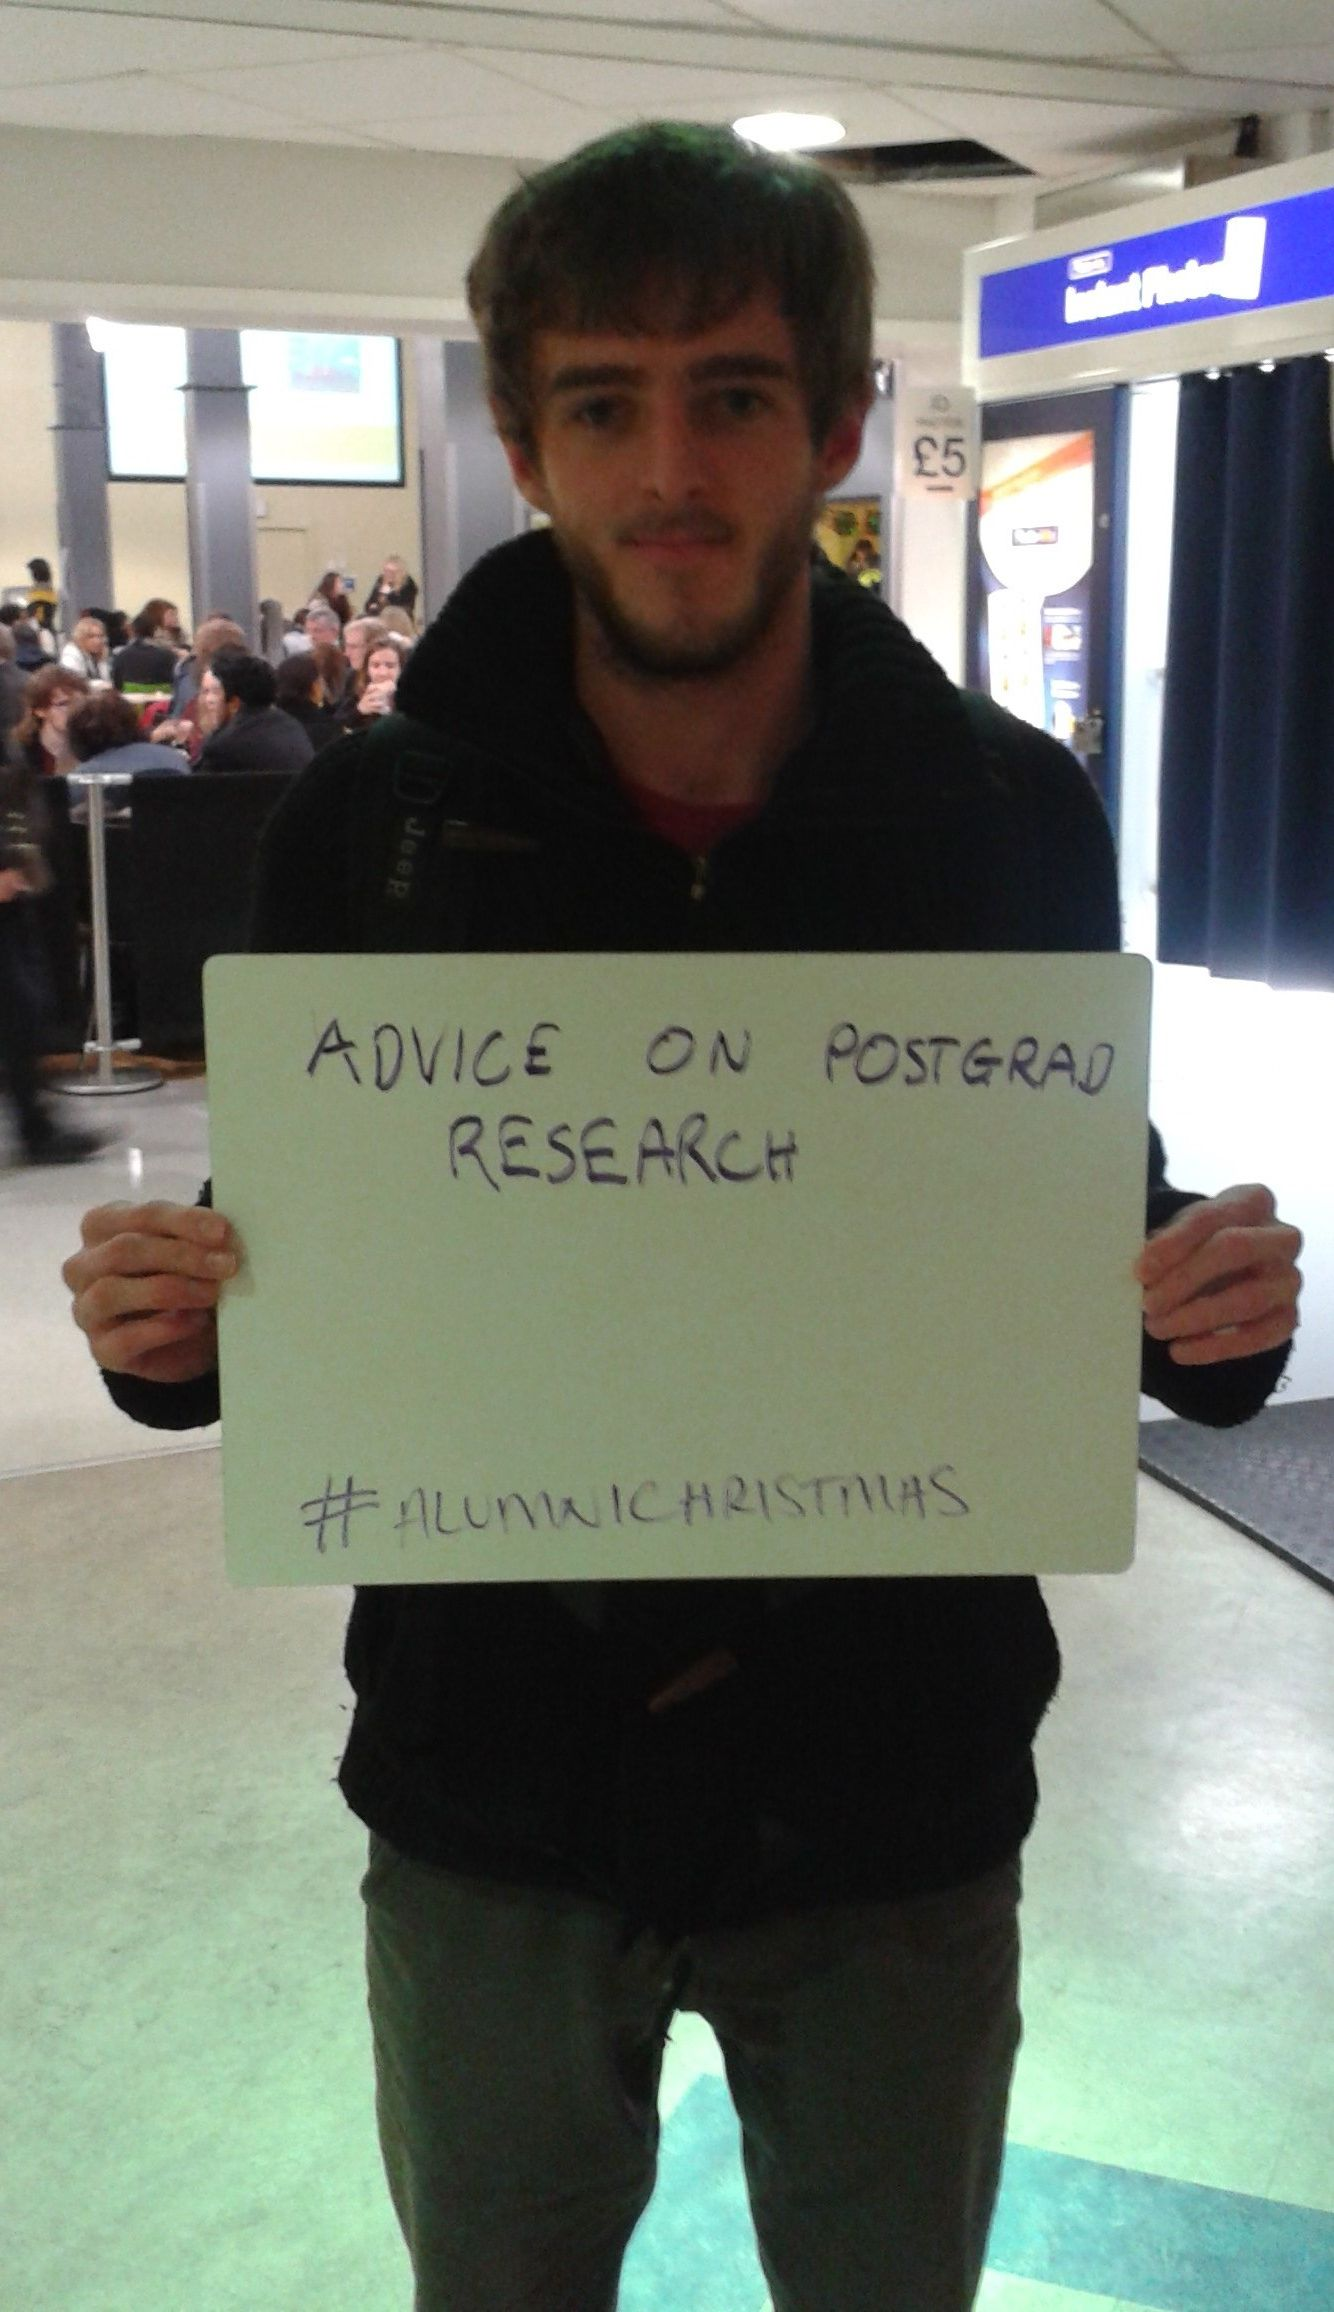 This student would appreciate advice on postgrad research